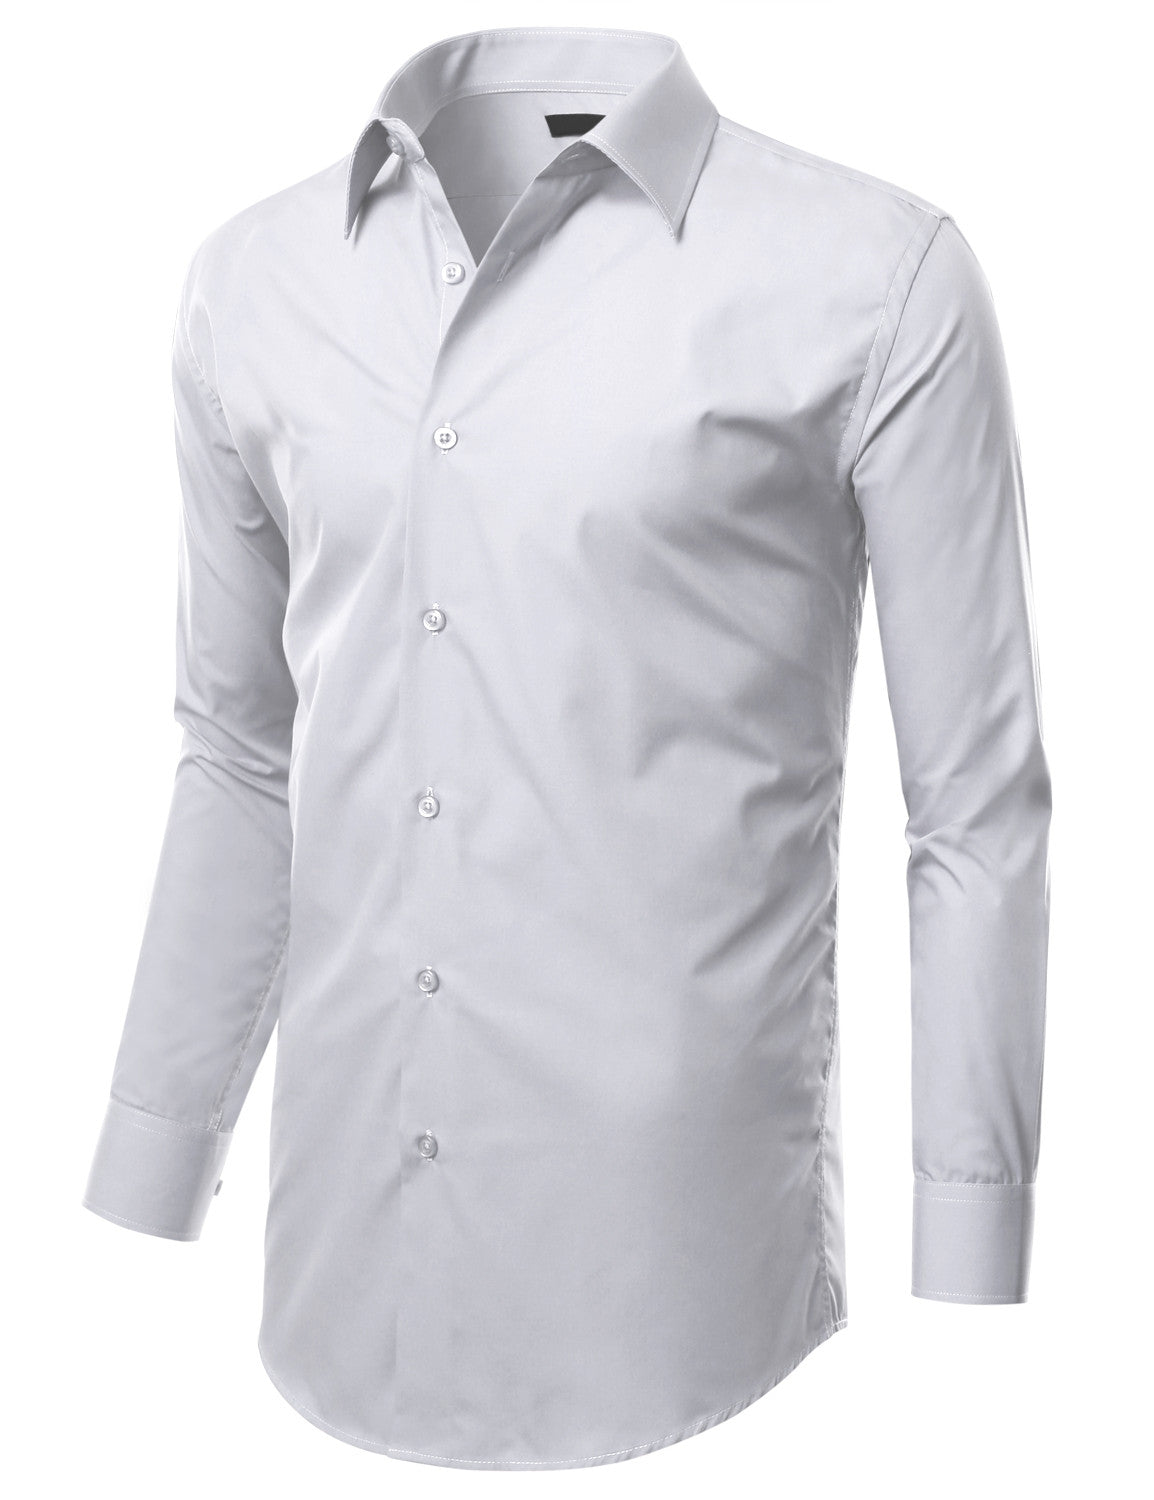 TC01WHITE White Slim Fit Dress Shirt w/ Reversible Cuff (Big & Tall Available)- MONDAYSUIT